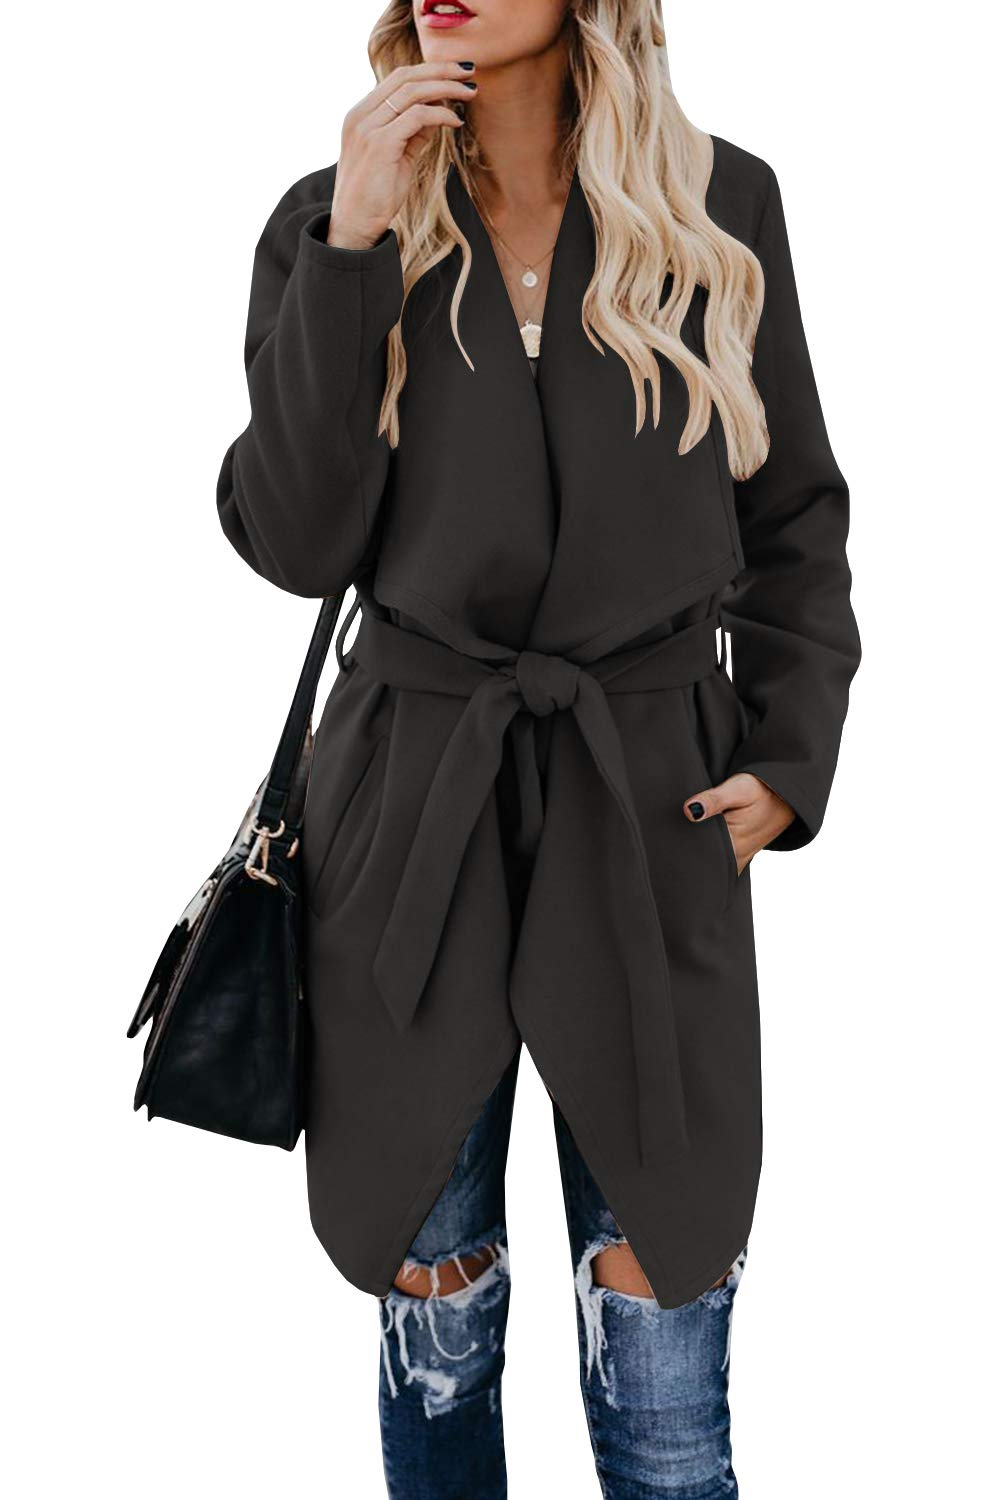 Foshow Women's Lapel Wool Blend Coat Long Sleeve Belted Trench Overcoat with Pockets Black by Foshow